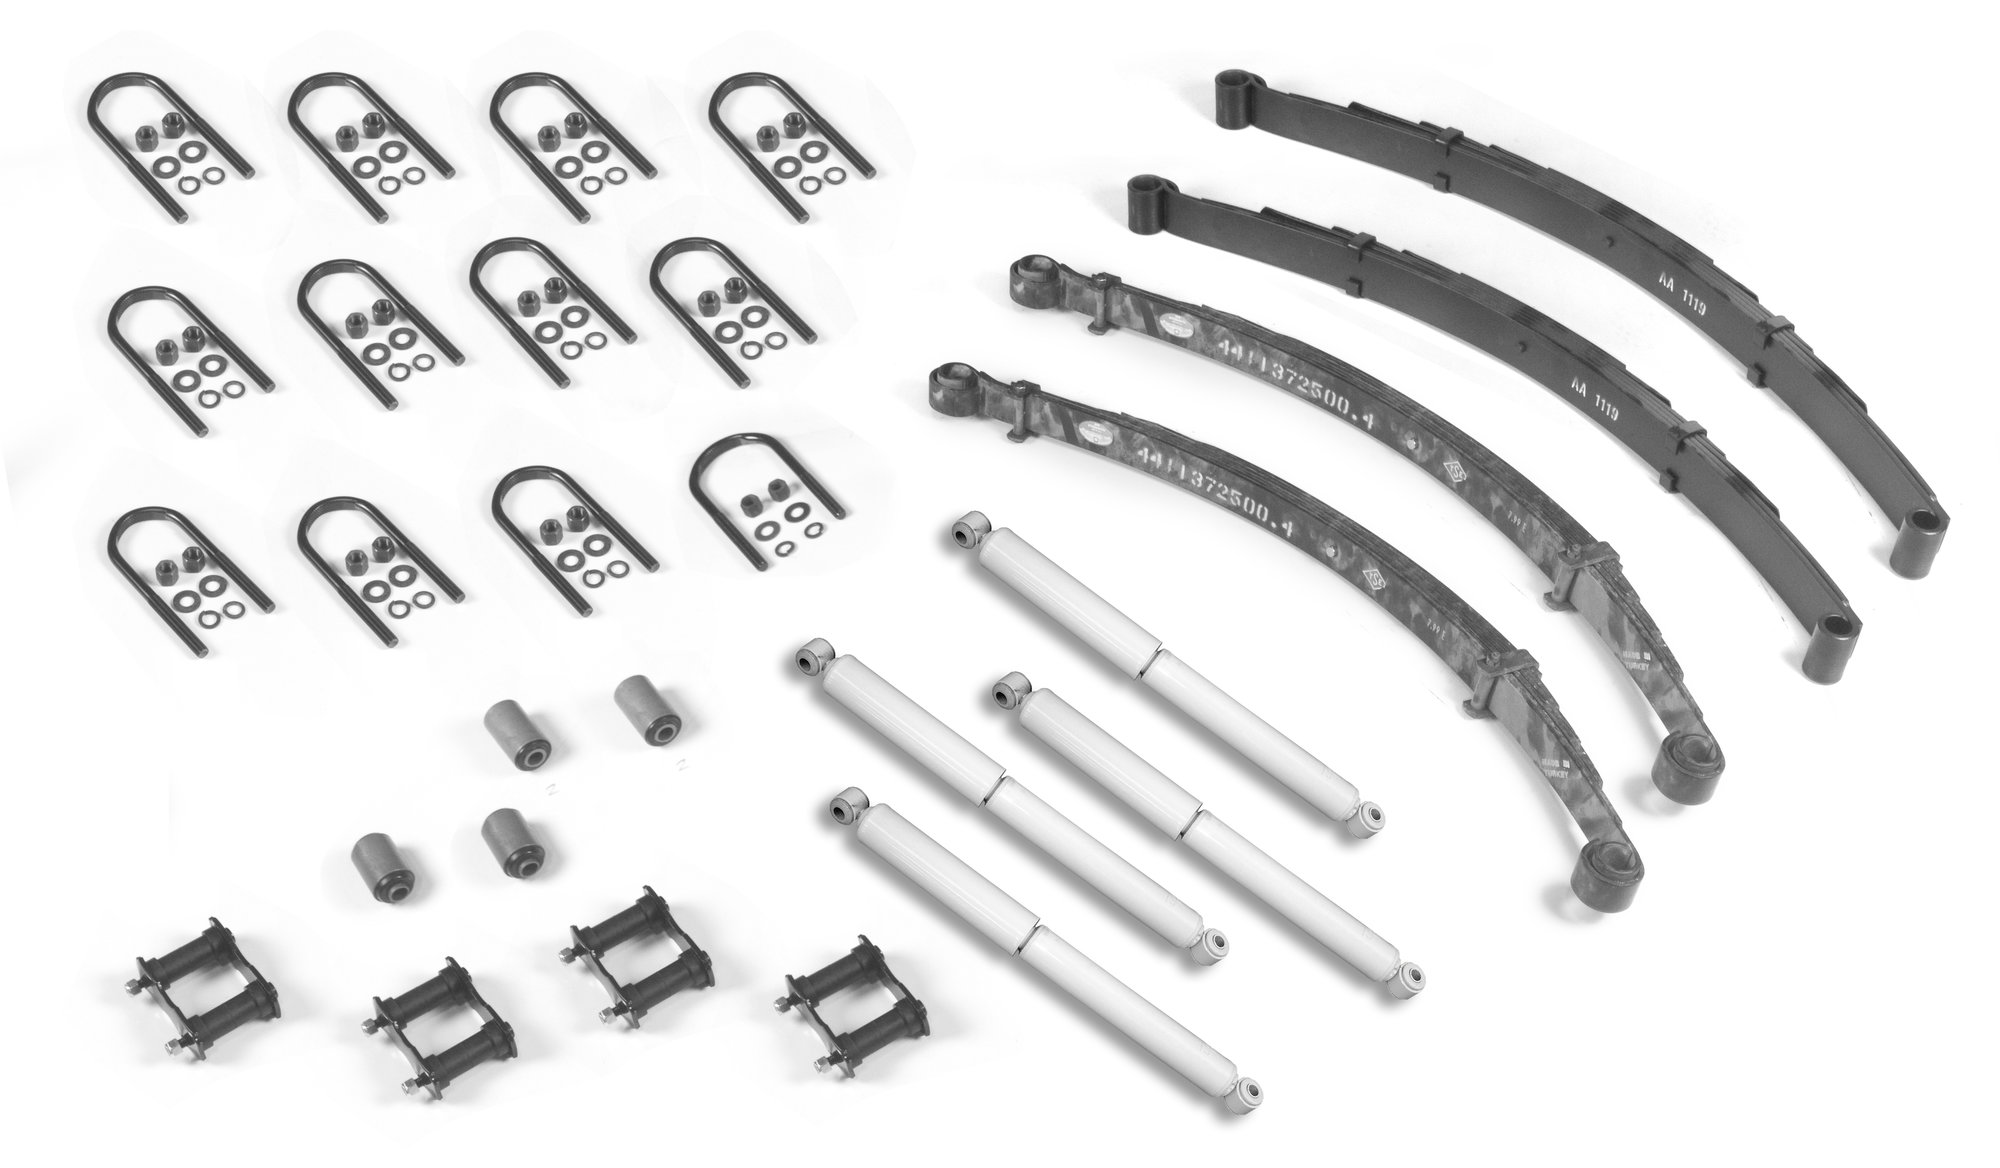 OMIX-ADA 18290.04 Master Suspension Rebuilder Kit for 76